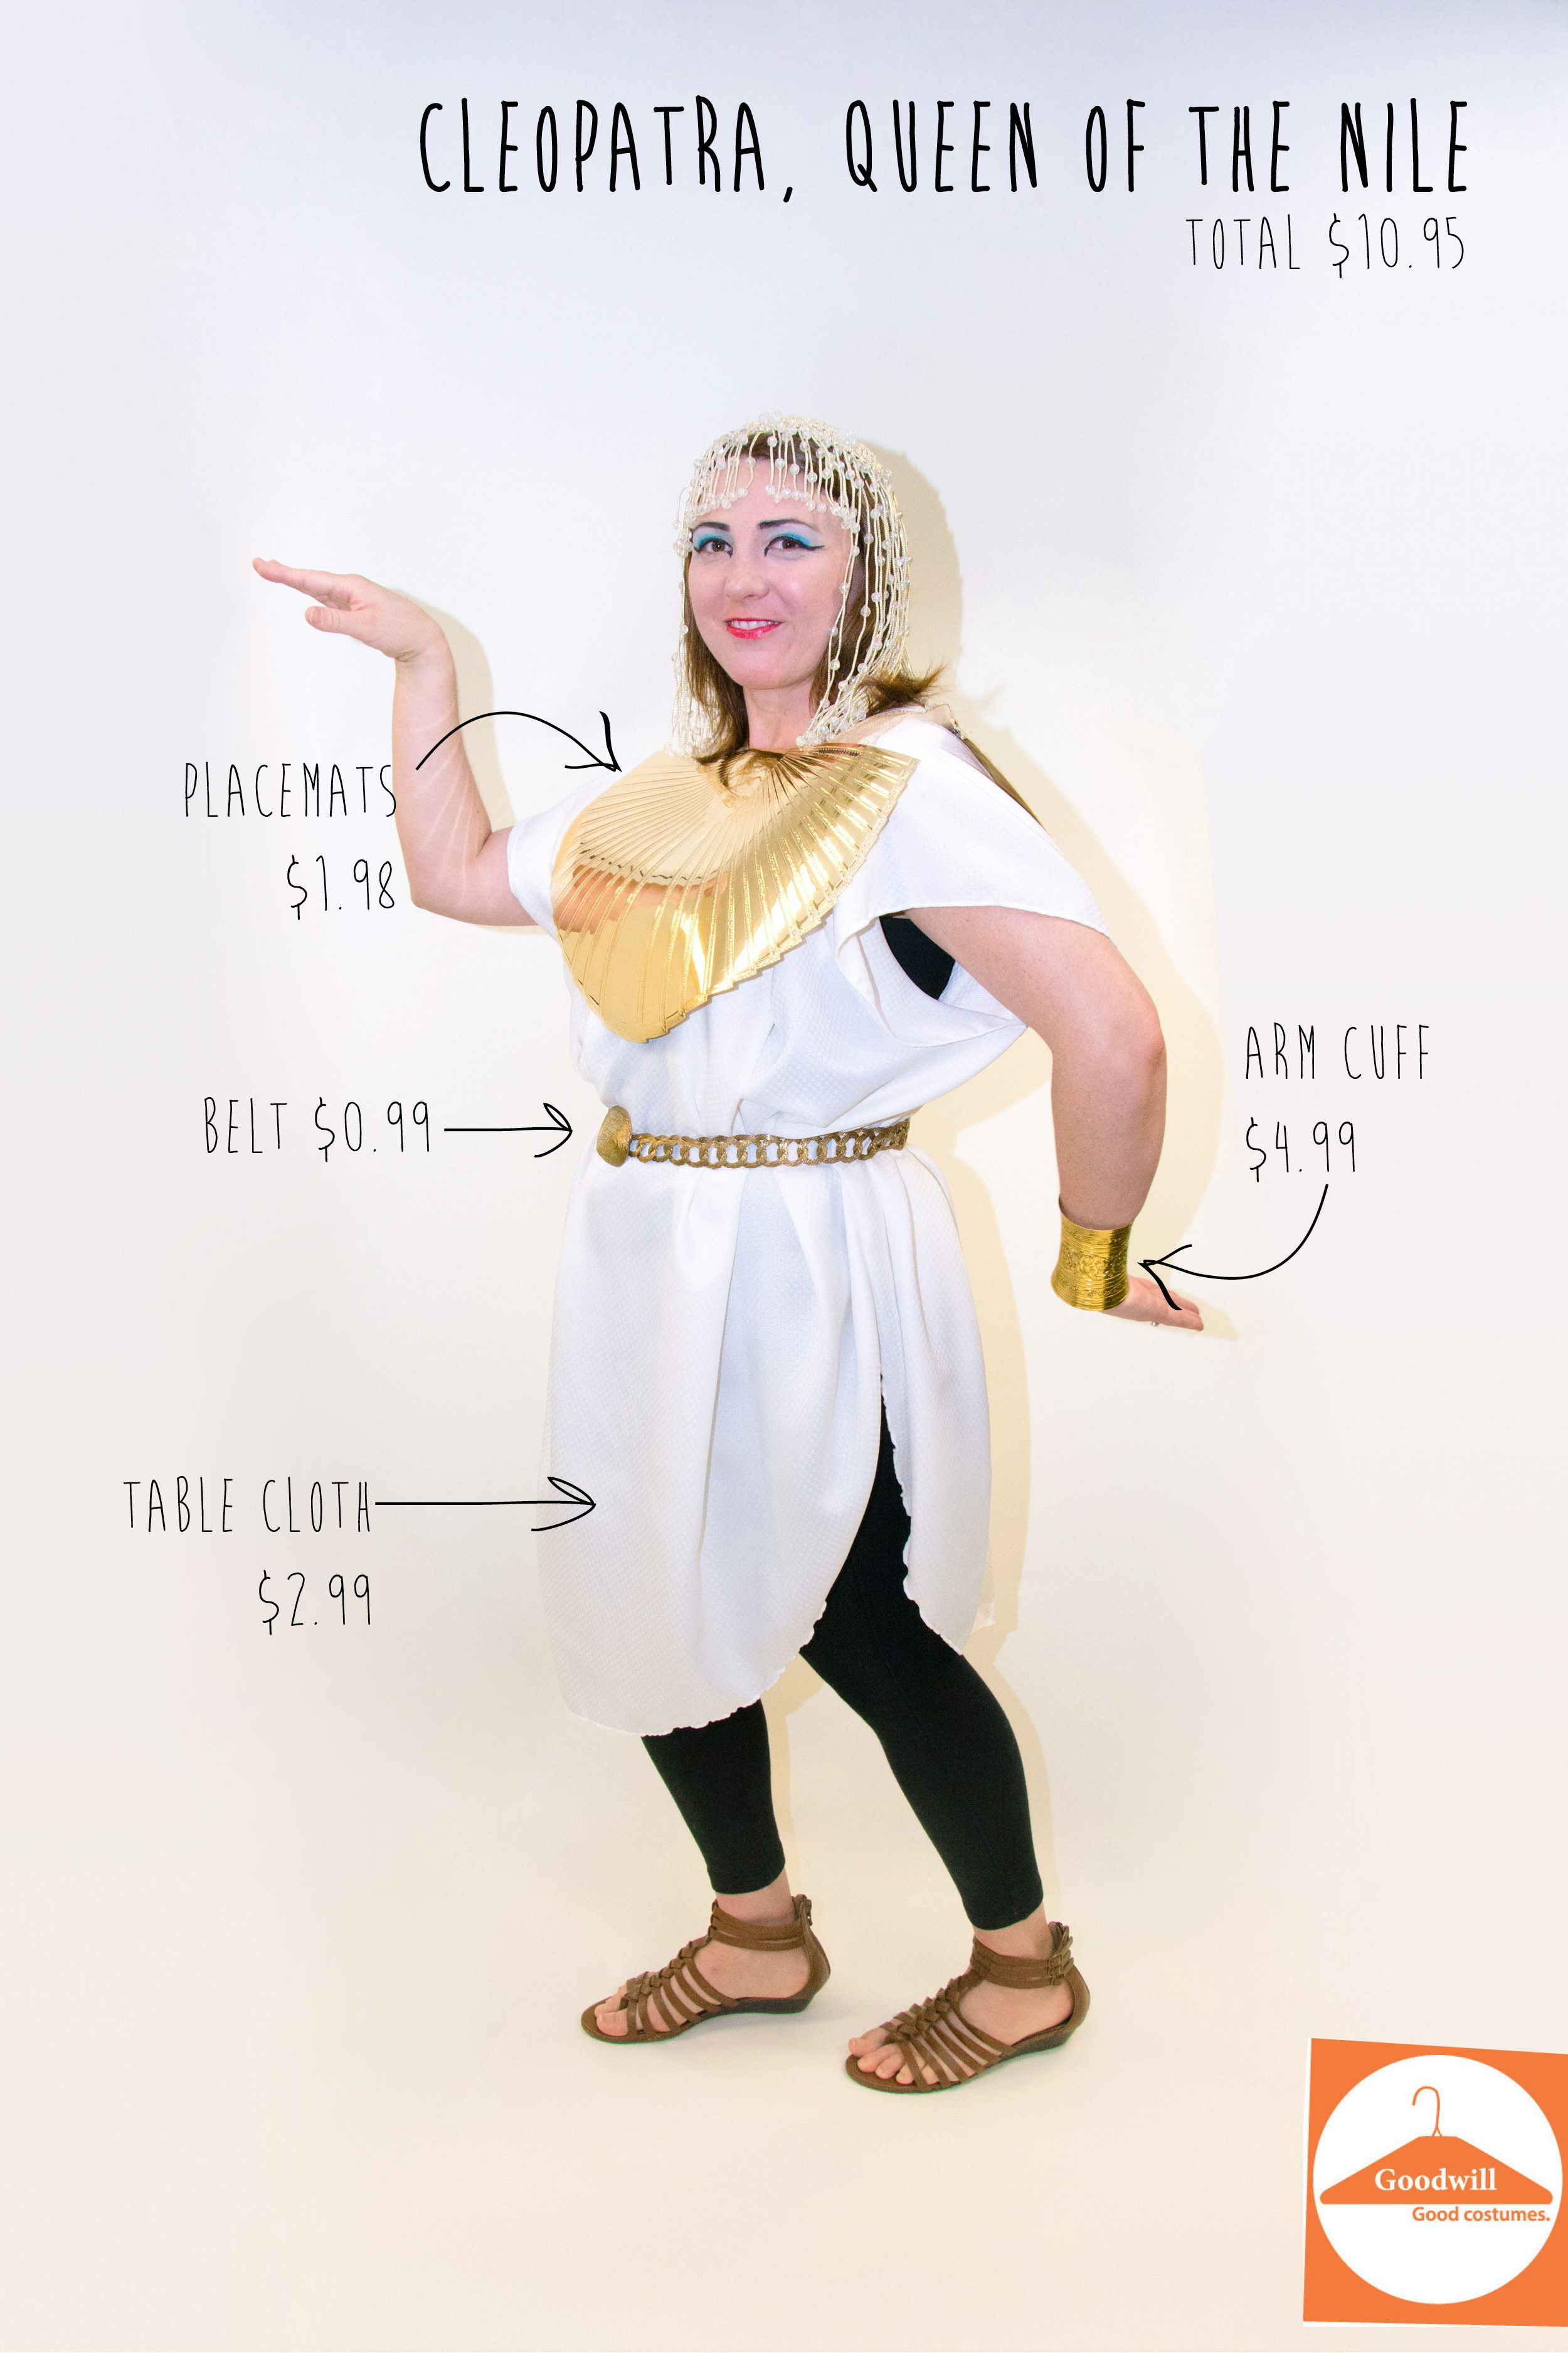 Diy Cleopatra Costume From A Table Cloth And Placemats